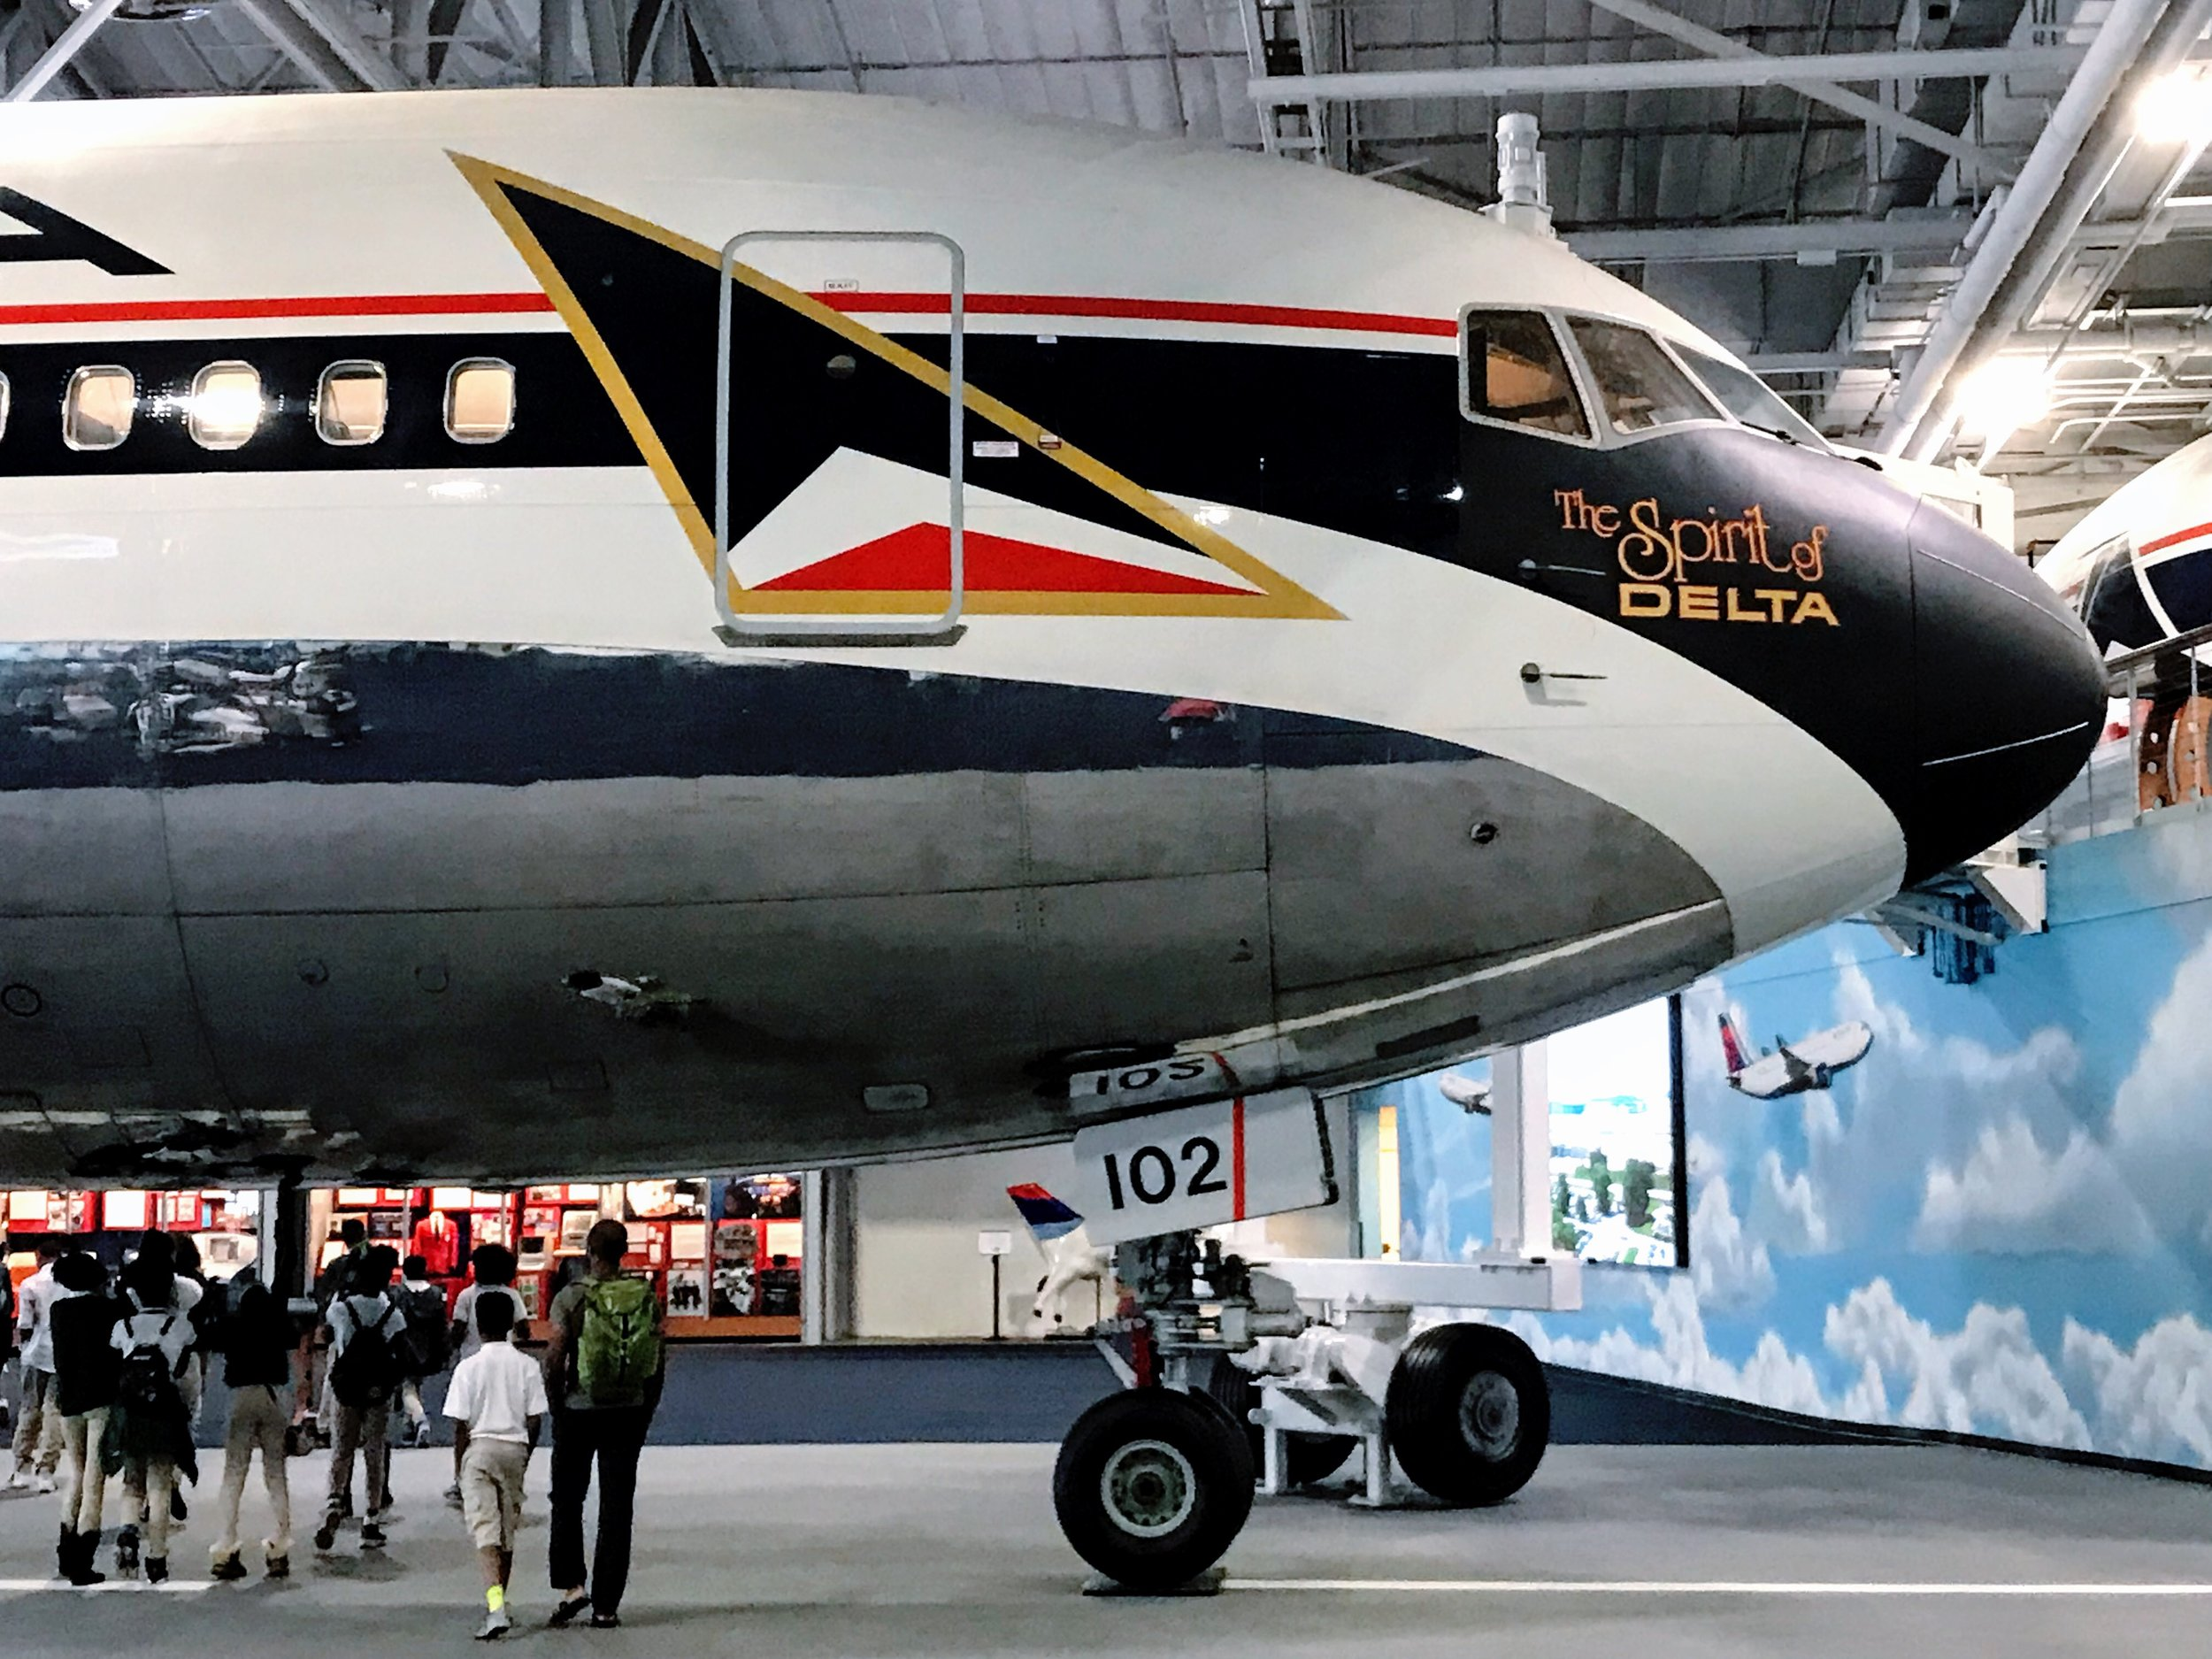 DELTA FLIGHT MUSEUM - Learn about the history of Delta Air Lines and tour several retired aircraft from Delta's fleet